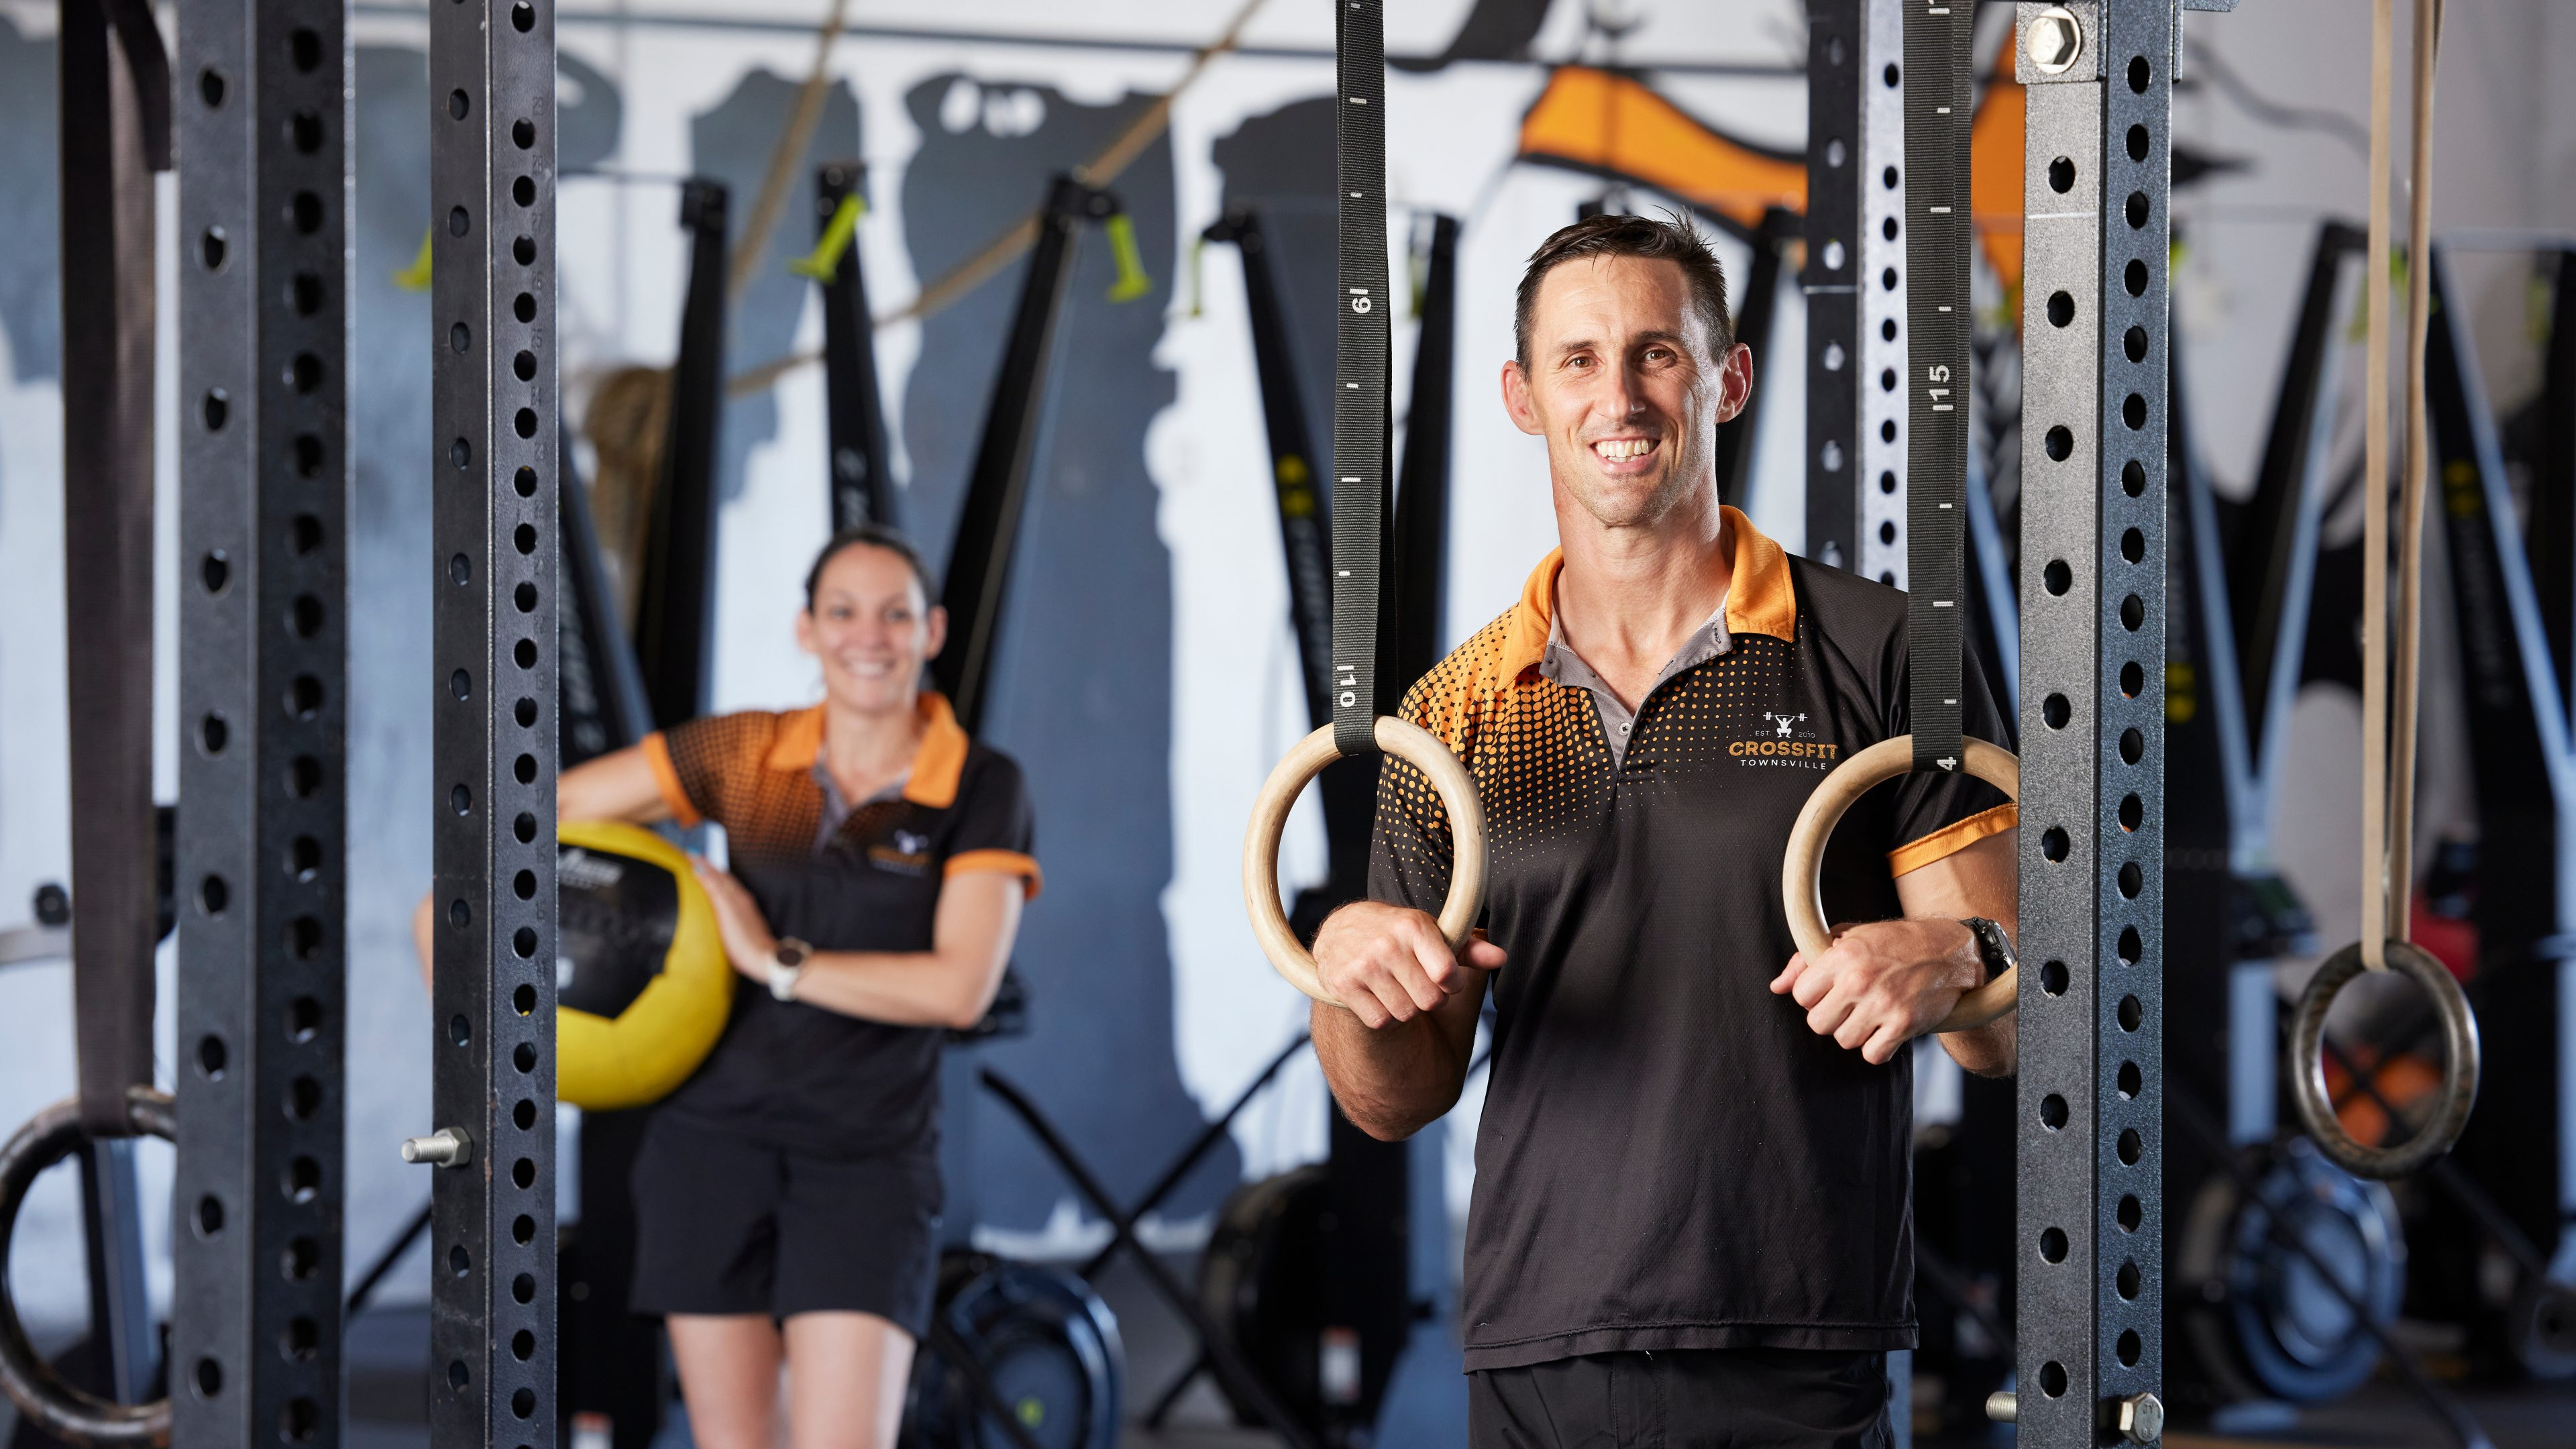 Local fitness business owner - financial services brand Cosca